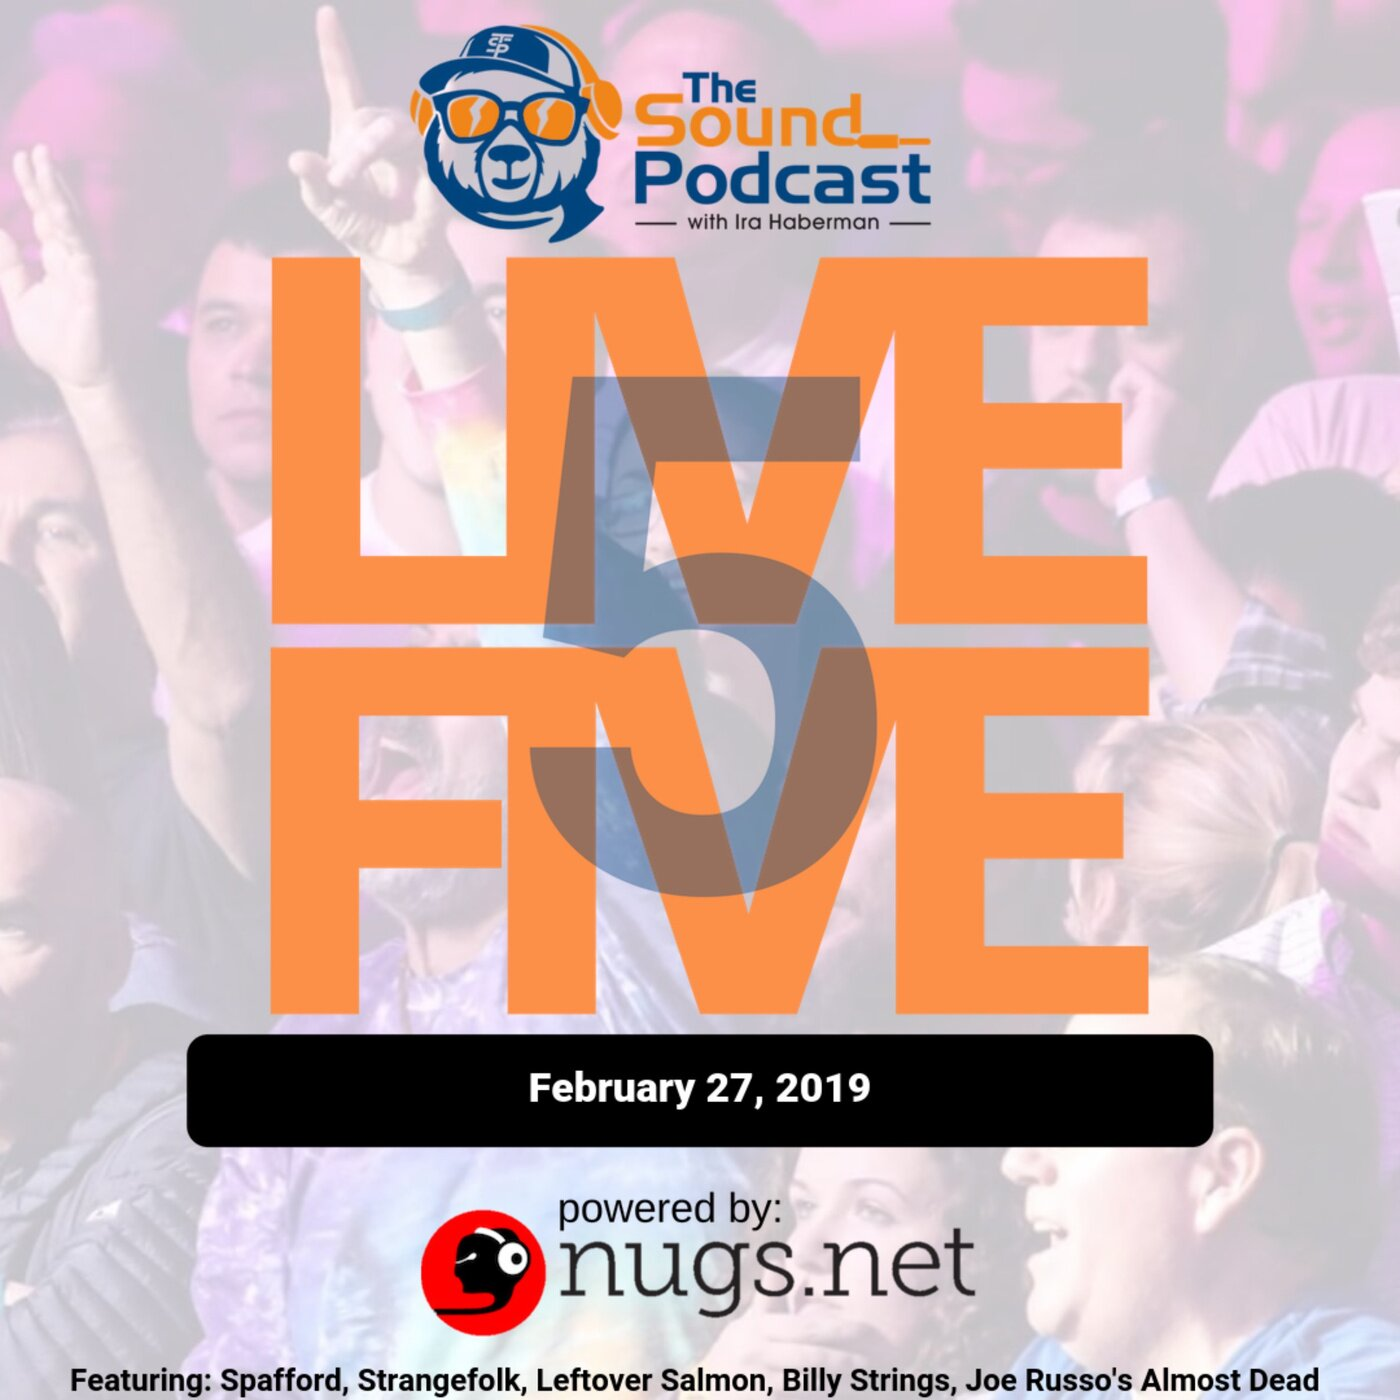 Episode: 9 - Live 5 - February 27, 2019.